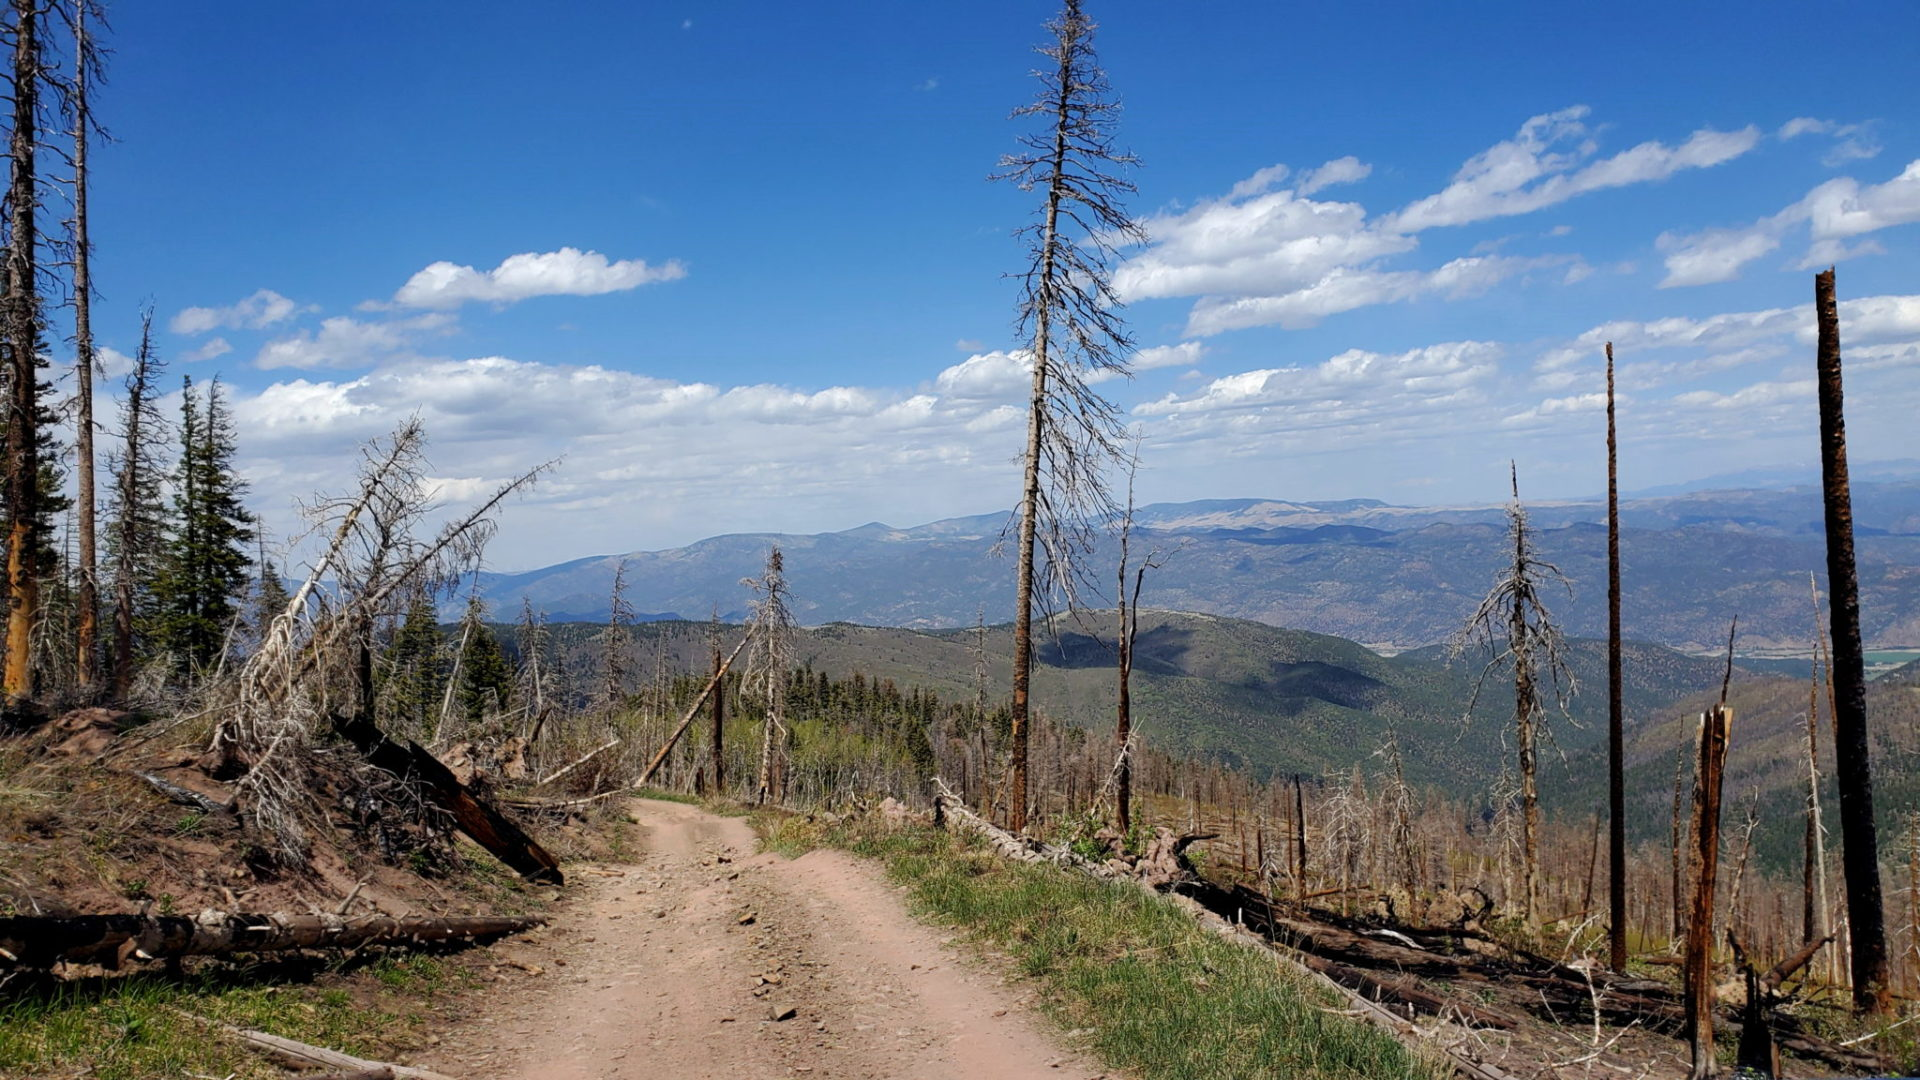 The scar from the Hayden fire on the east side